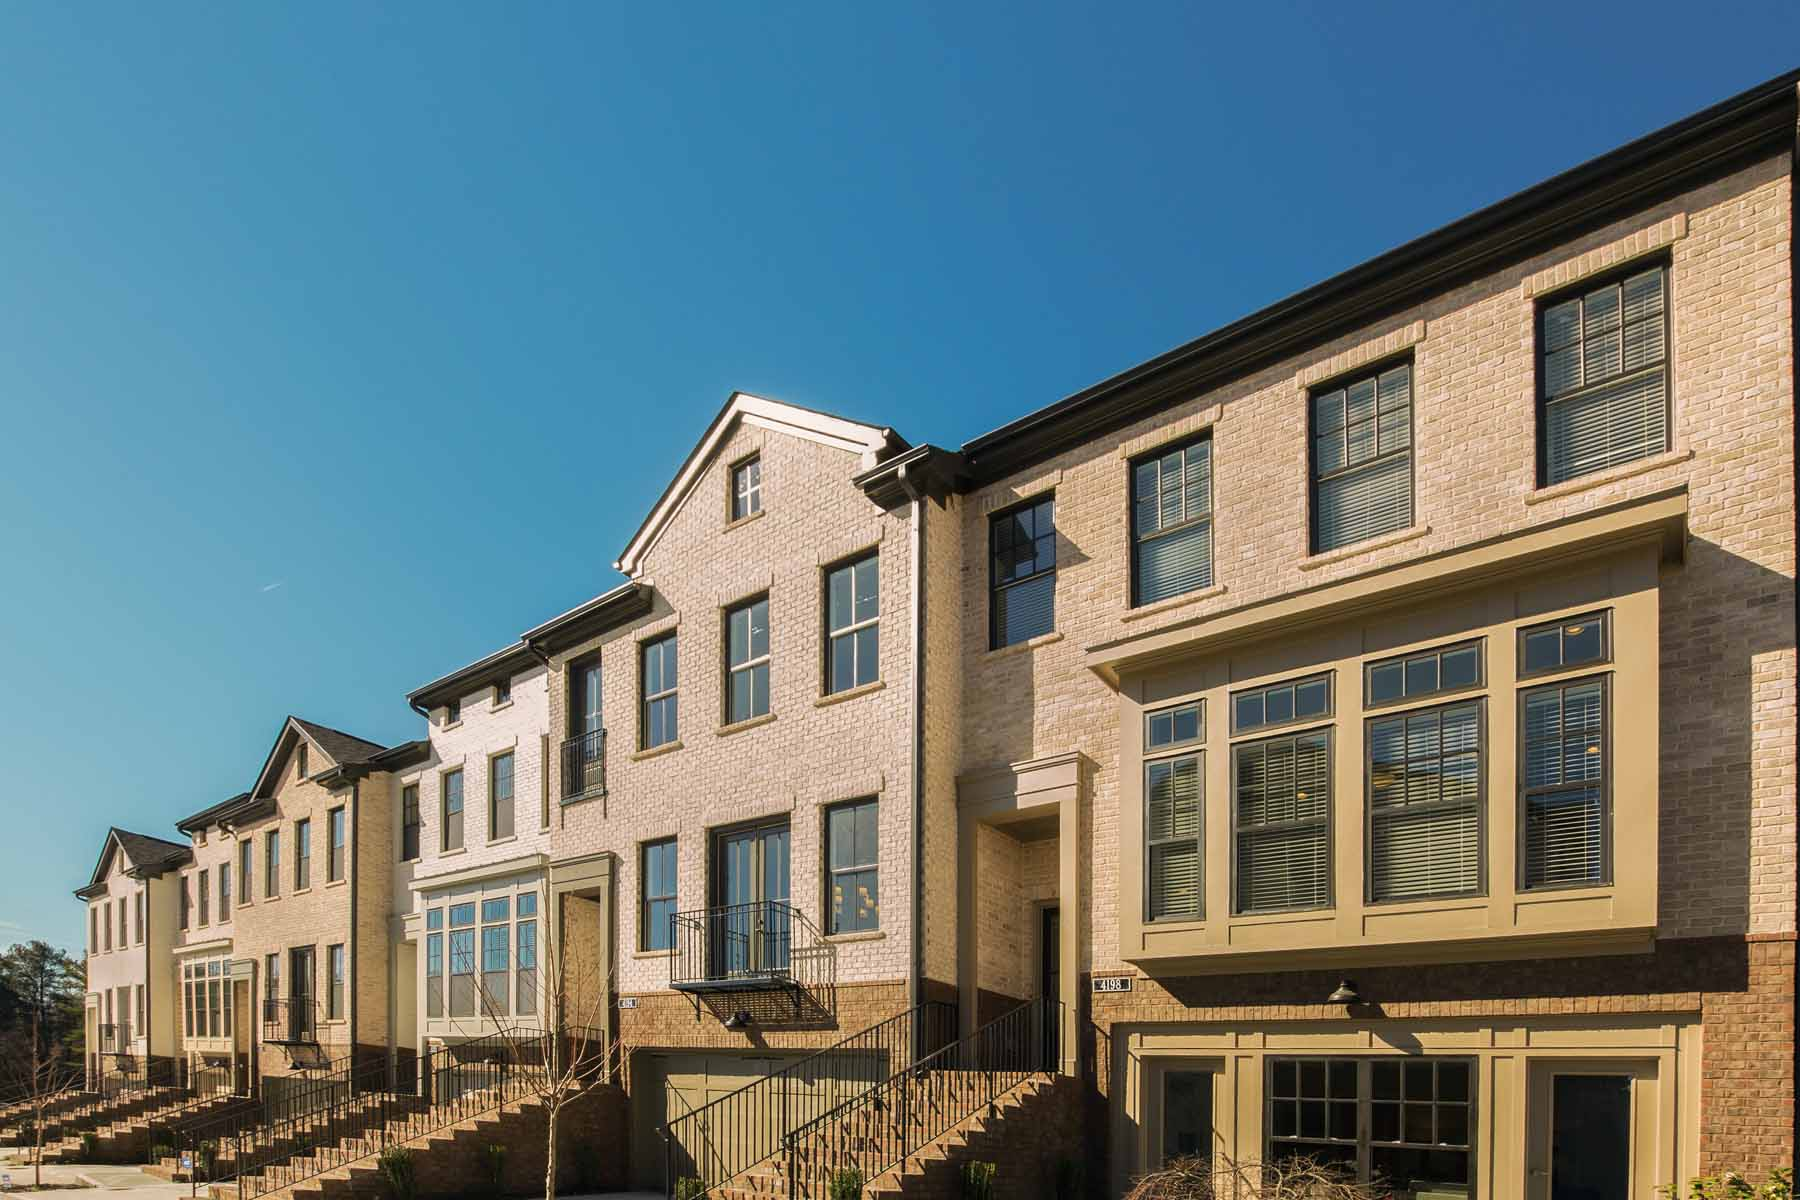 Single Family Home for Sale at New Construction in the Heart of Dunwoody 4330 Georgetown Square Unit 10 Dunwoody, Georgia, 30338 United States